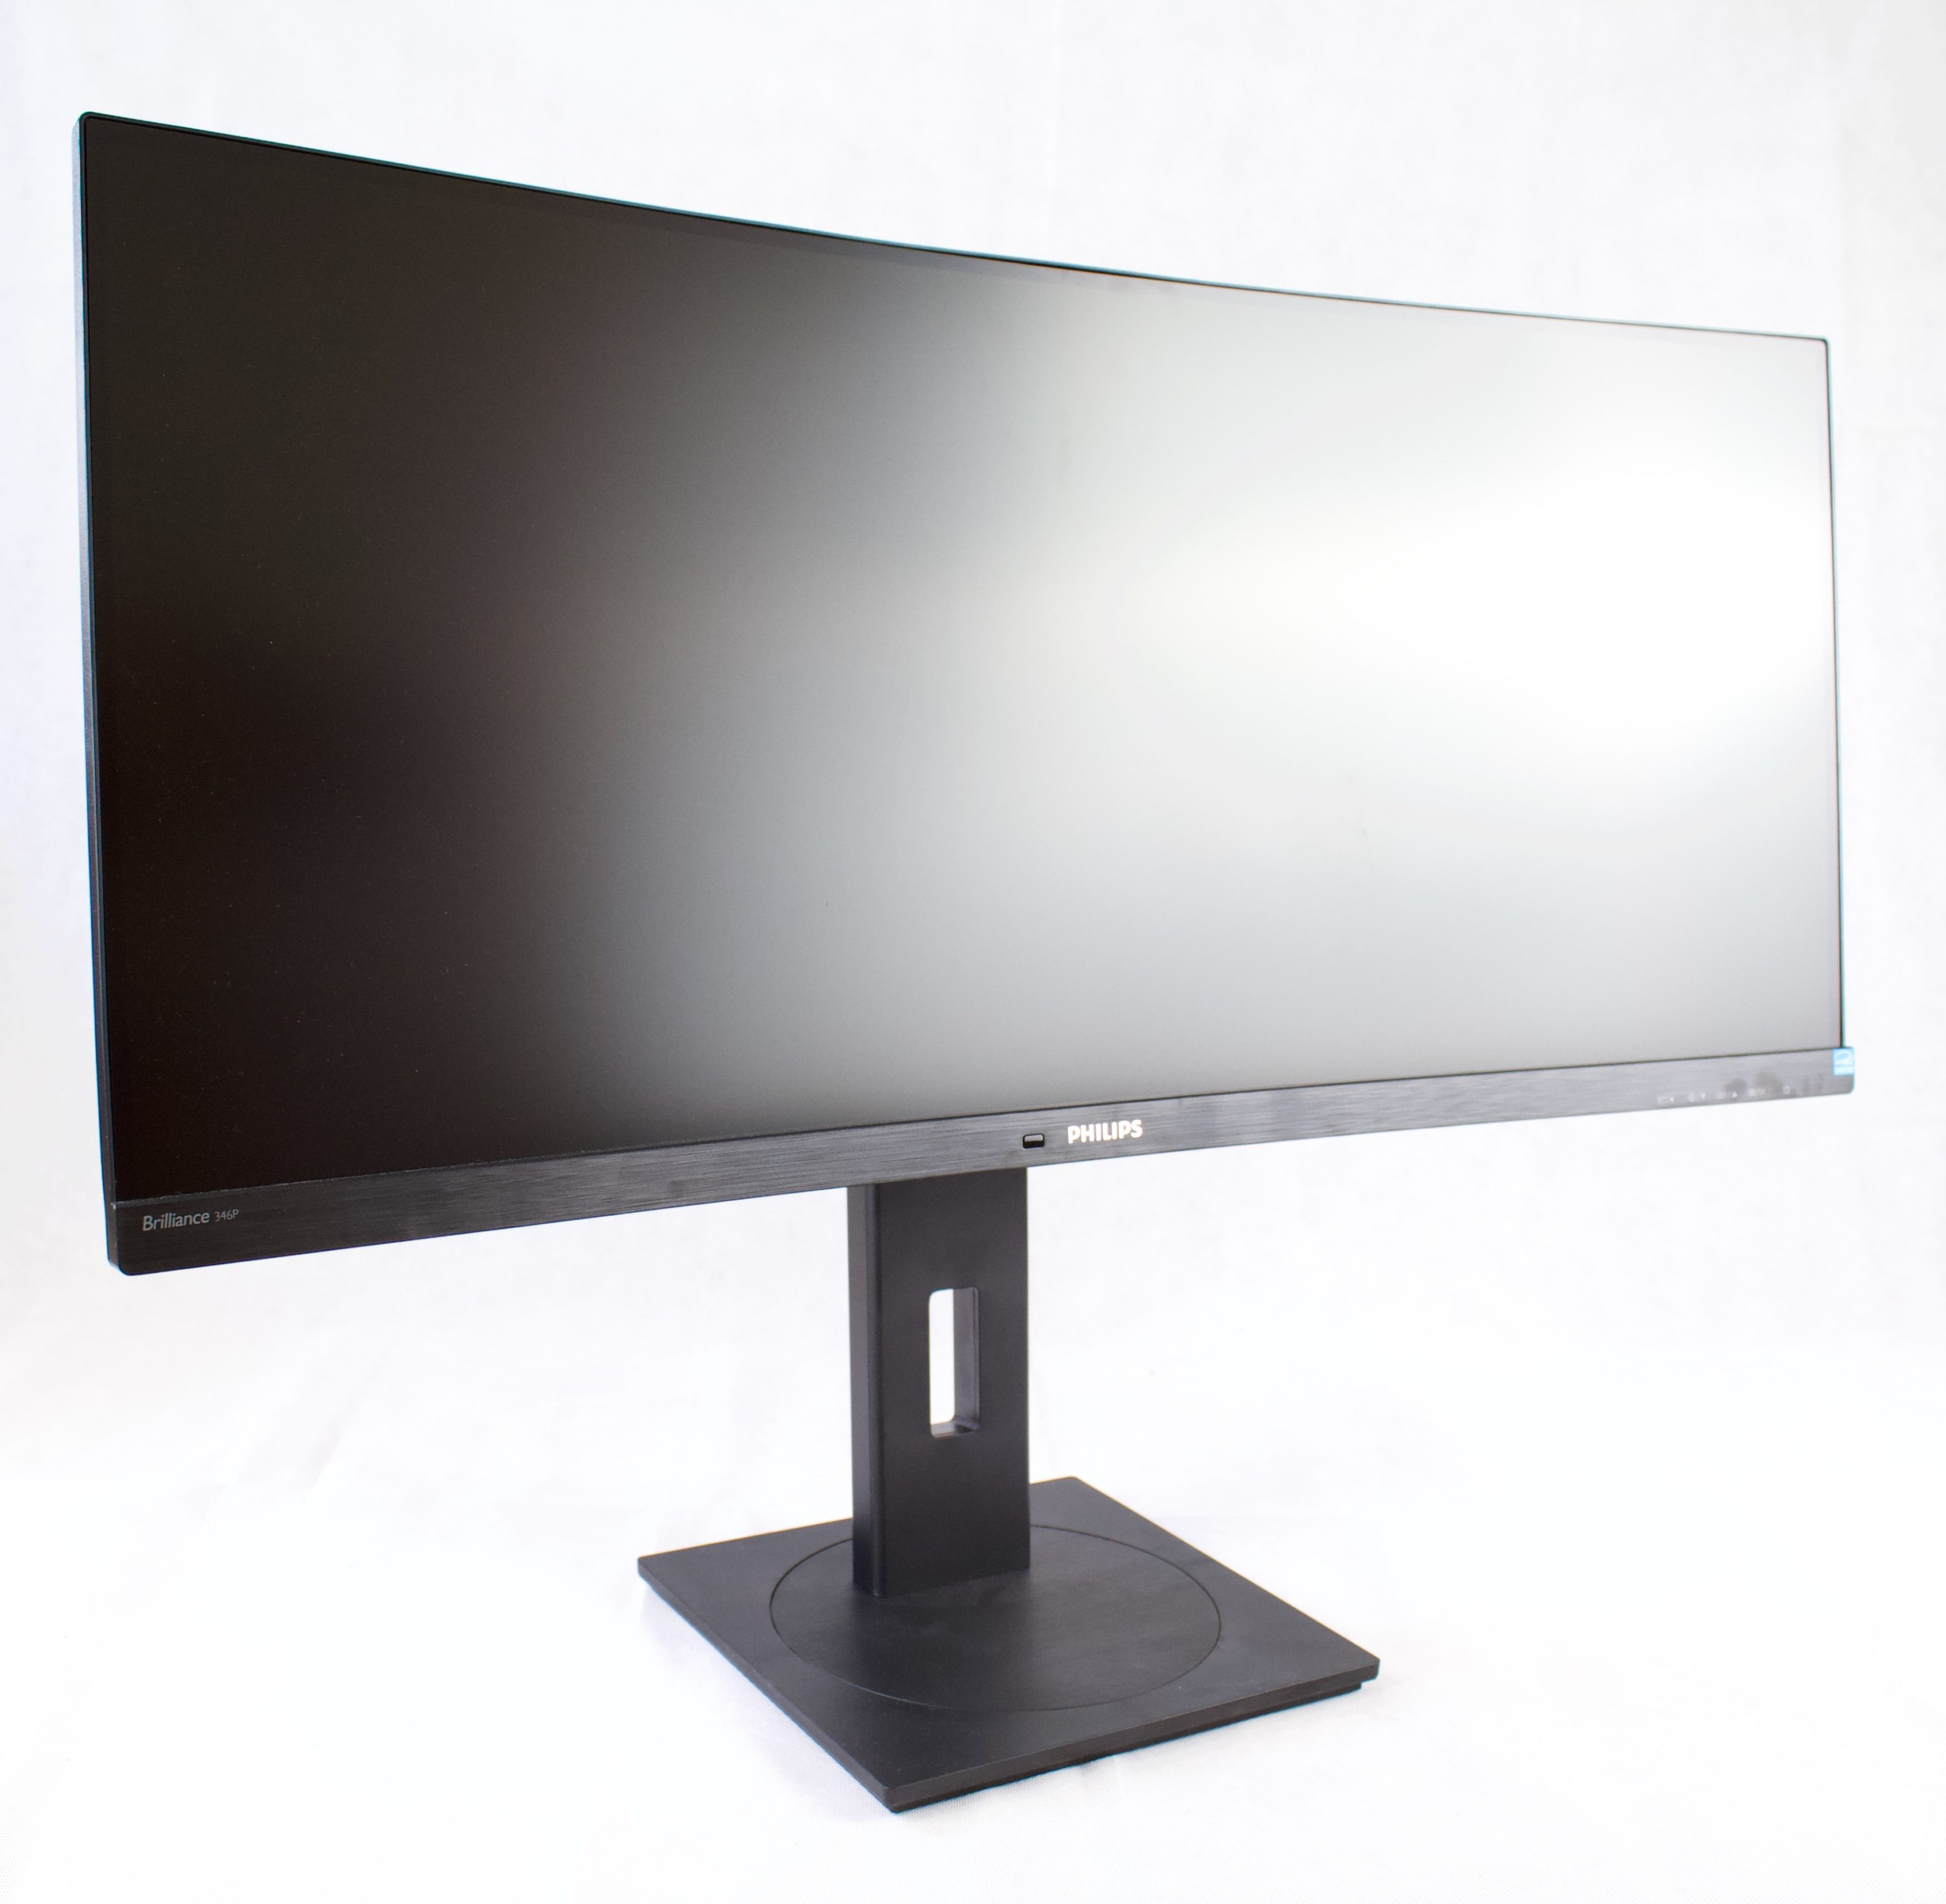 The perfect monitor all-rounder? The Philips P-line 9P9CRH in test!